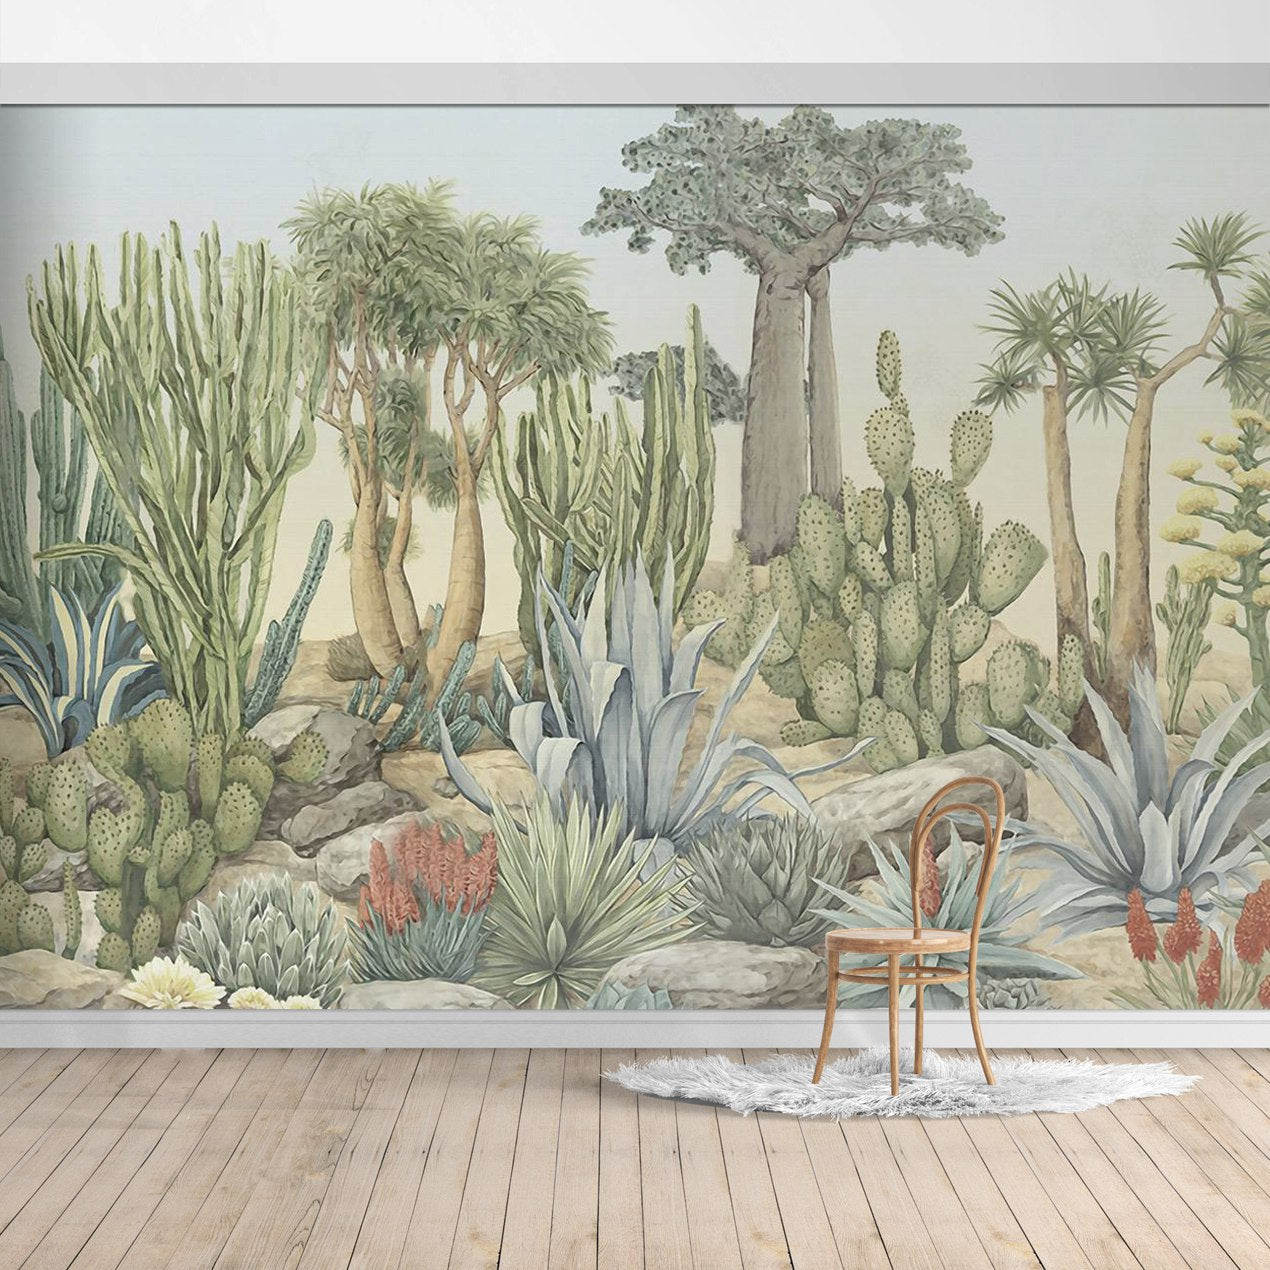 BOB024-2X Hawaiian style Jungle design Mural for bedroom or dinning room by SJK